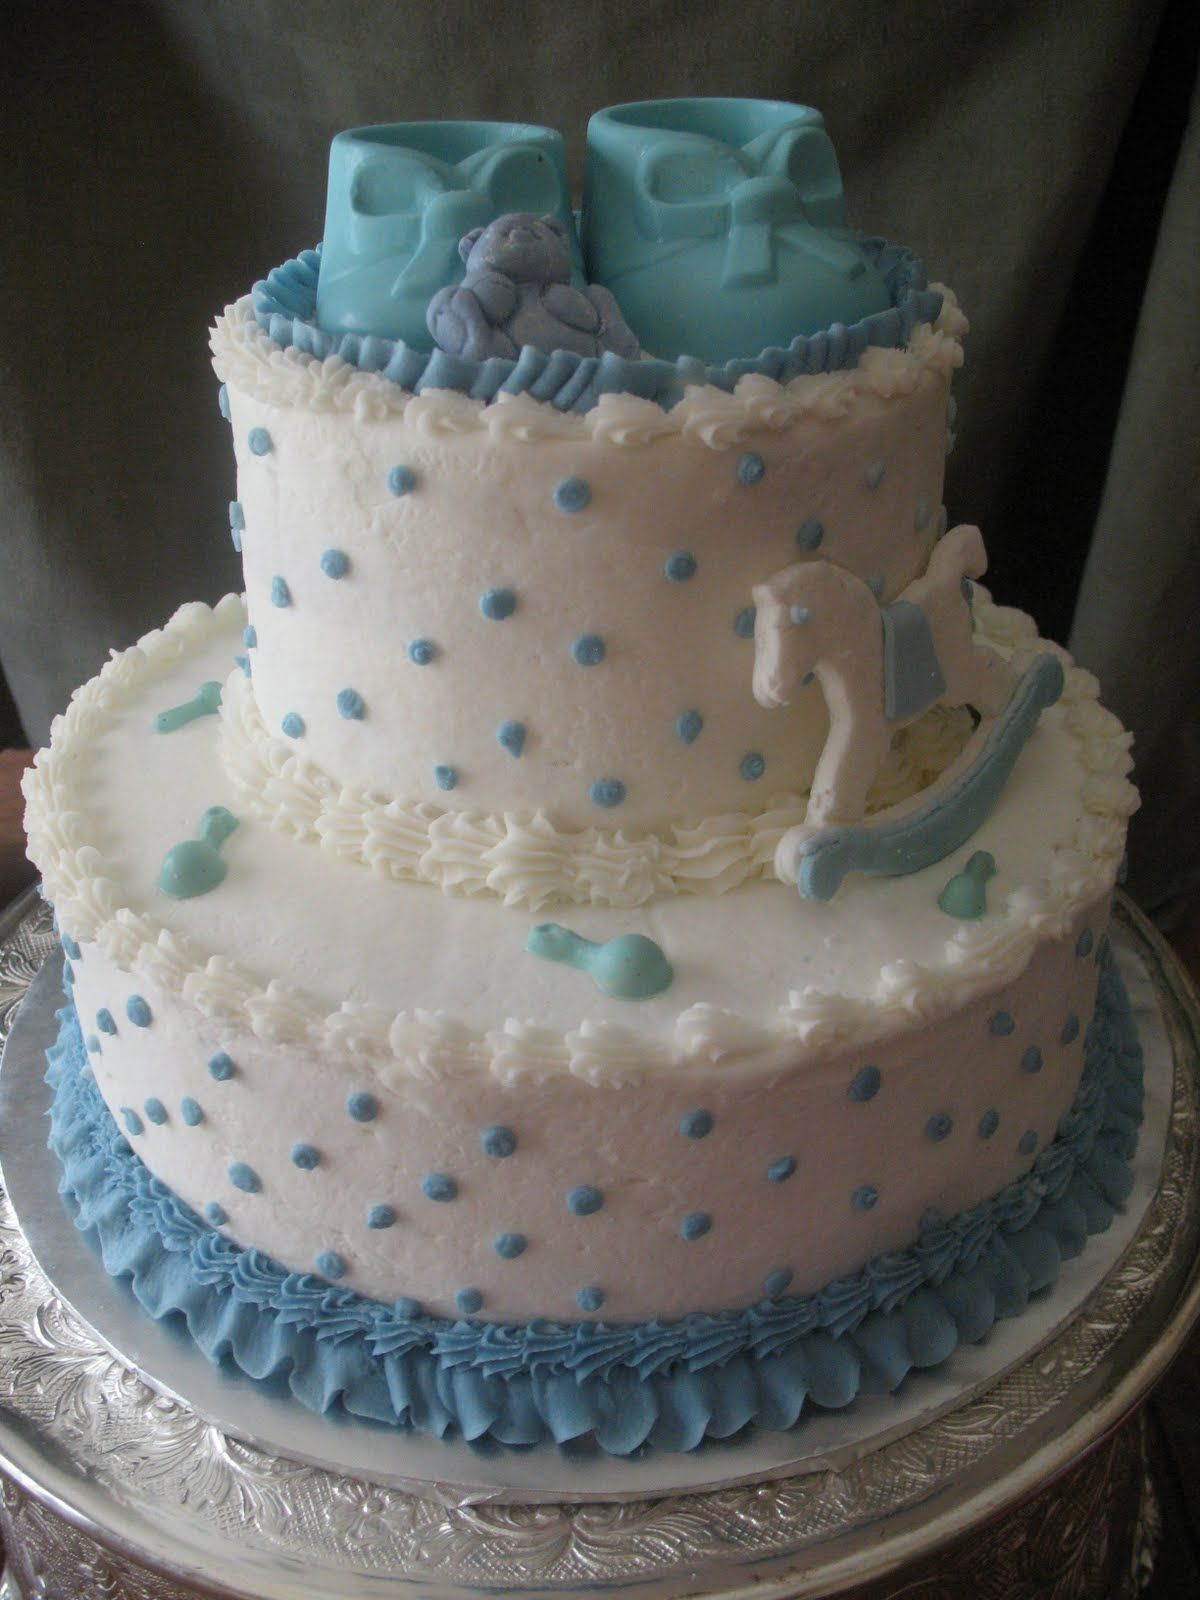 Buttercream Baby Shower Cakes This Baby Shower Cake Was An Almond Butter Cake With Buttercream